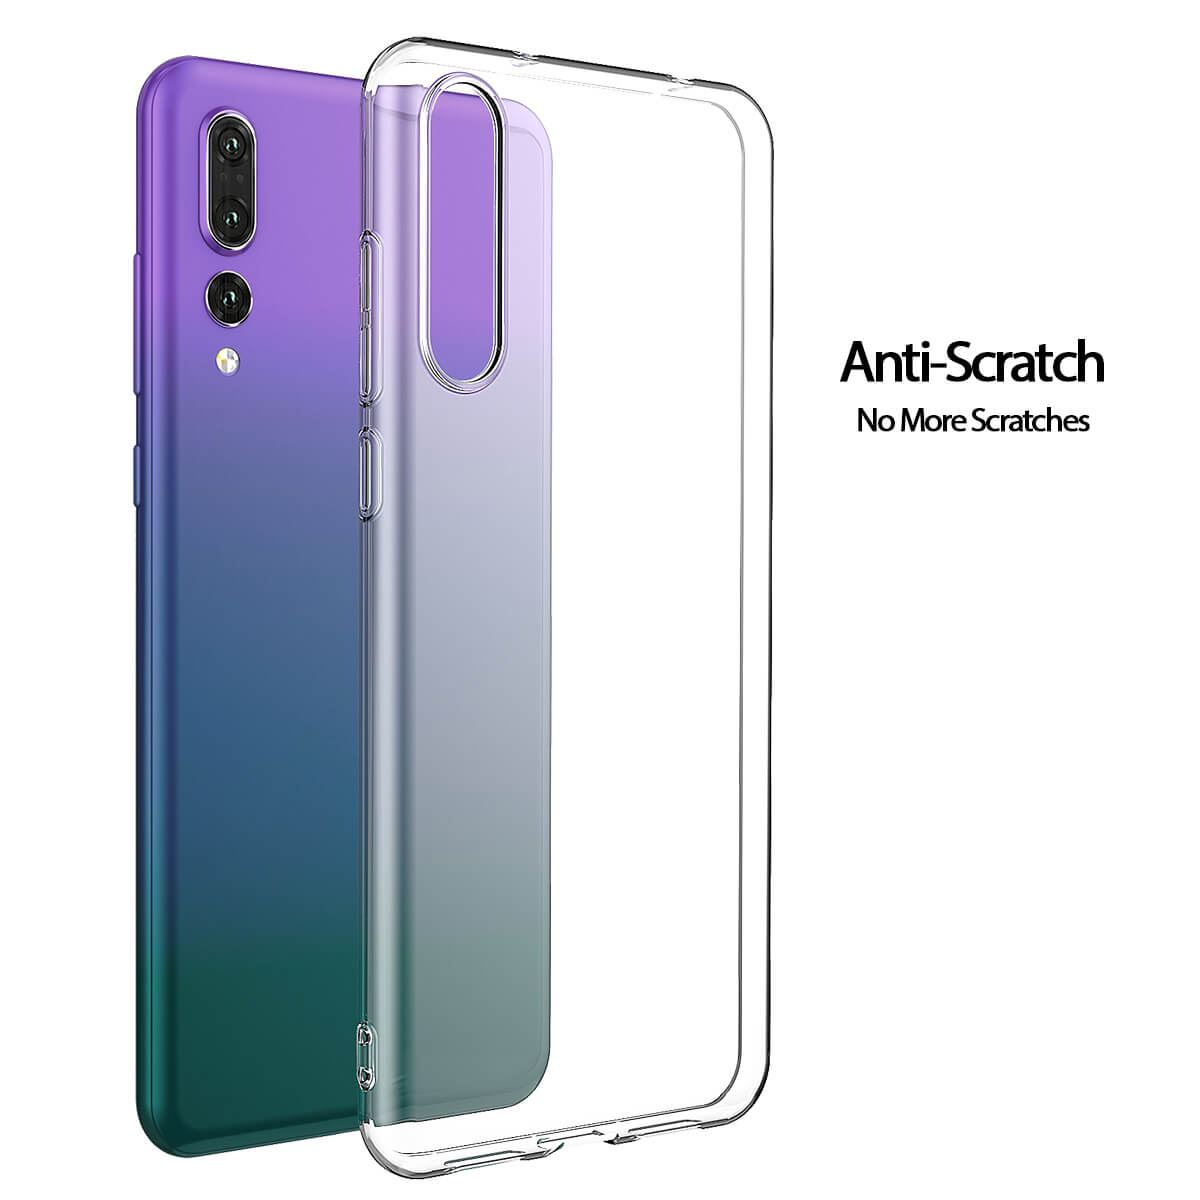 Shockproof-Silicone-Protective-Clear-Gel-Cover-Case-For-Huawei-P20-Pro-P-Smart thumbnail 41